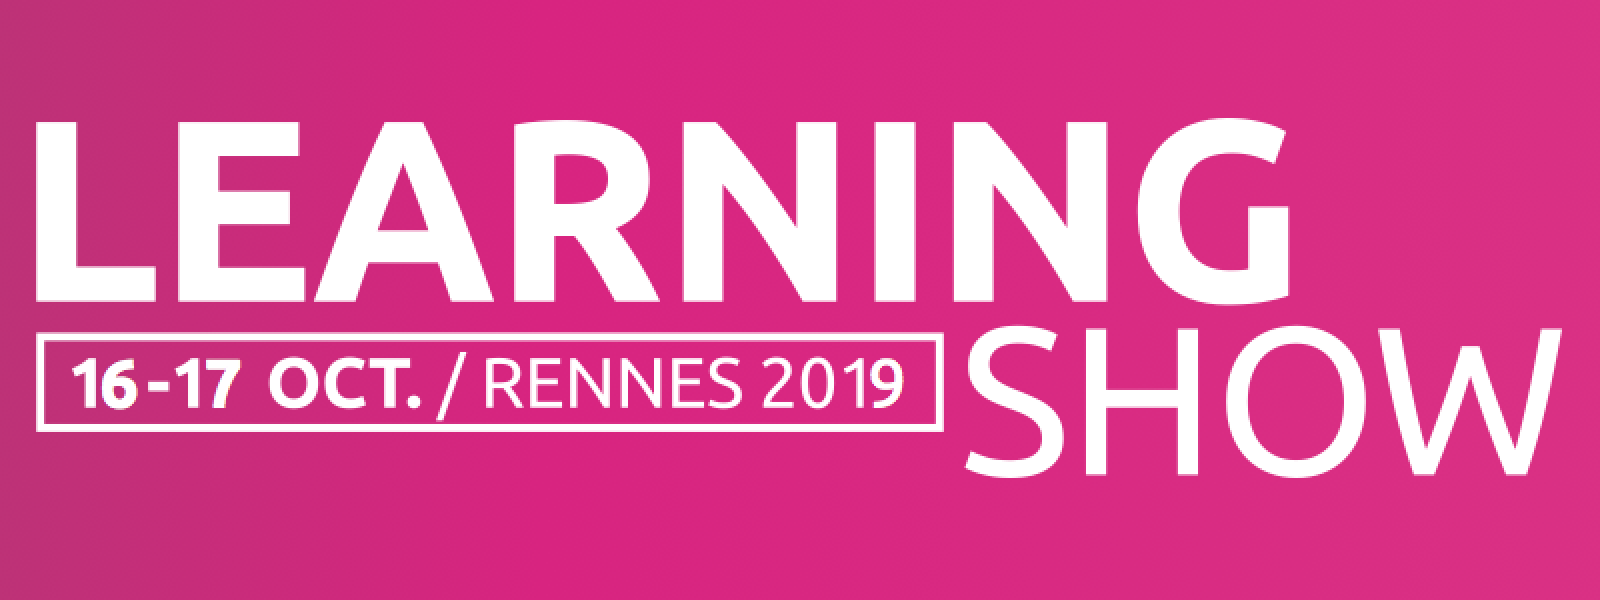 Learning Show 2019 Rennes